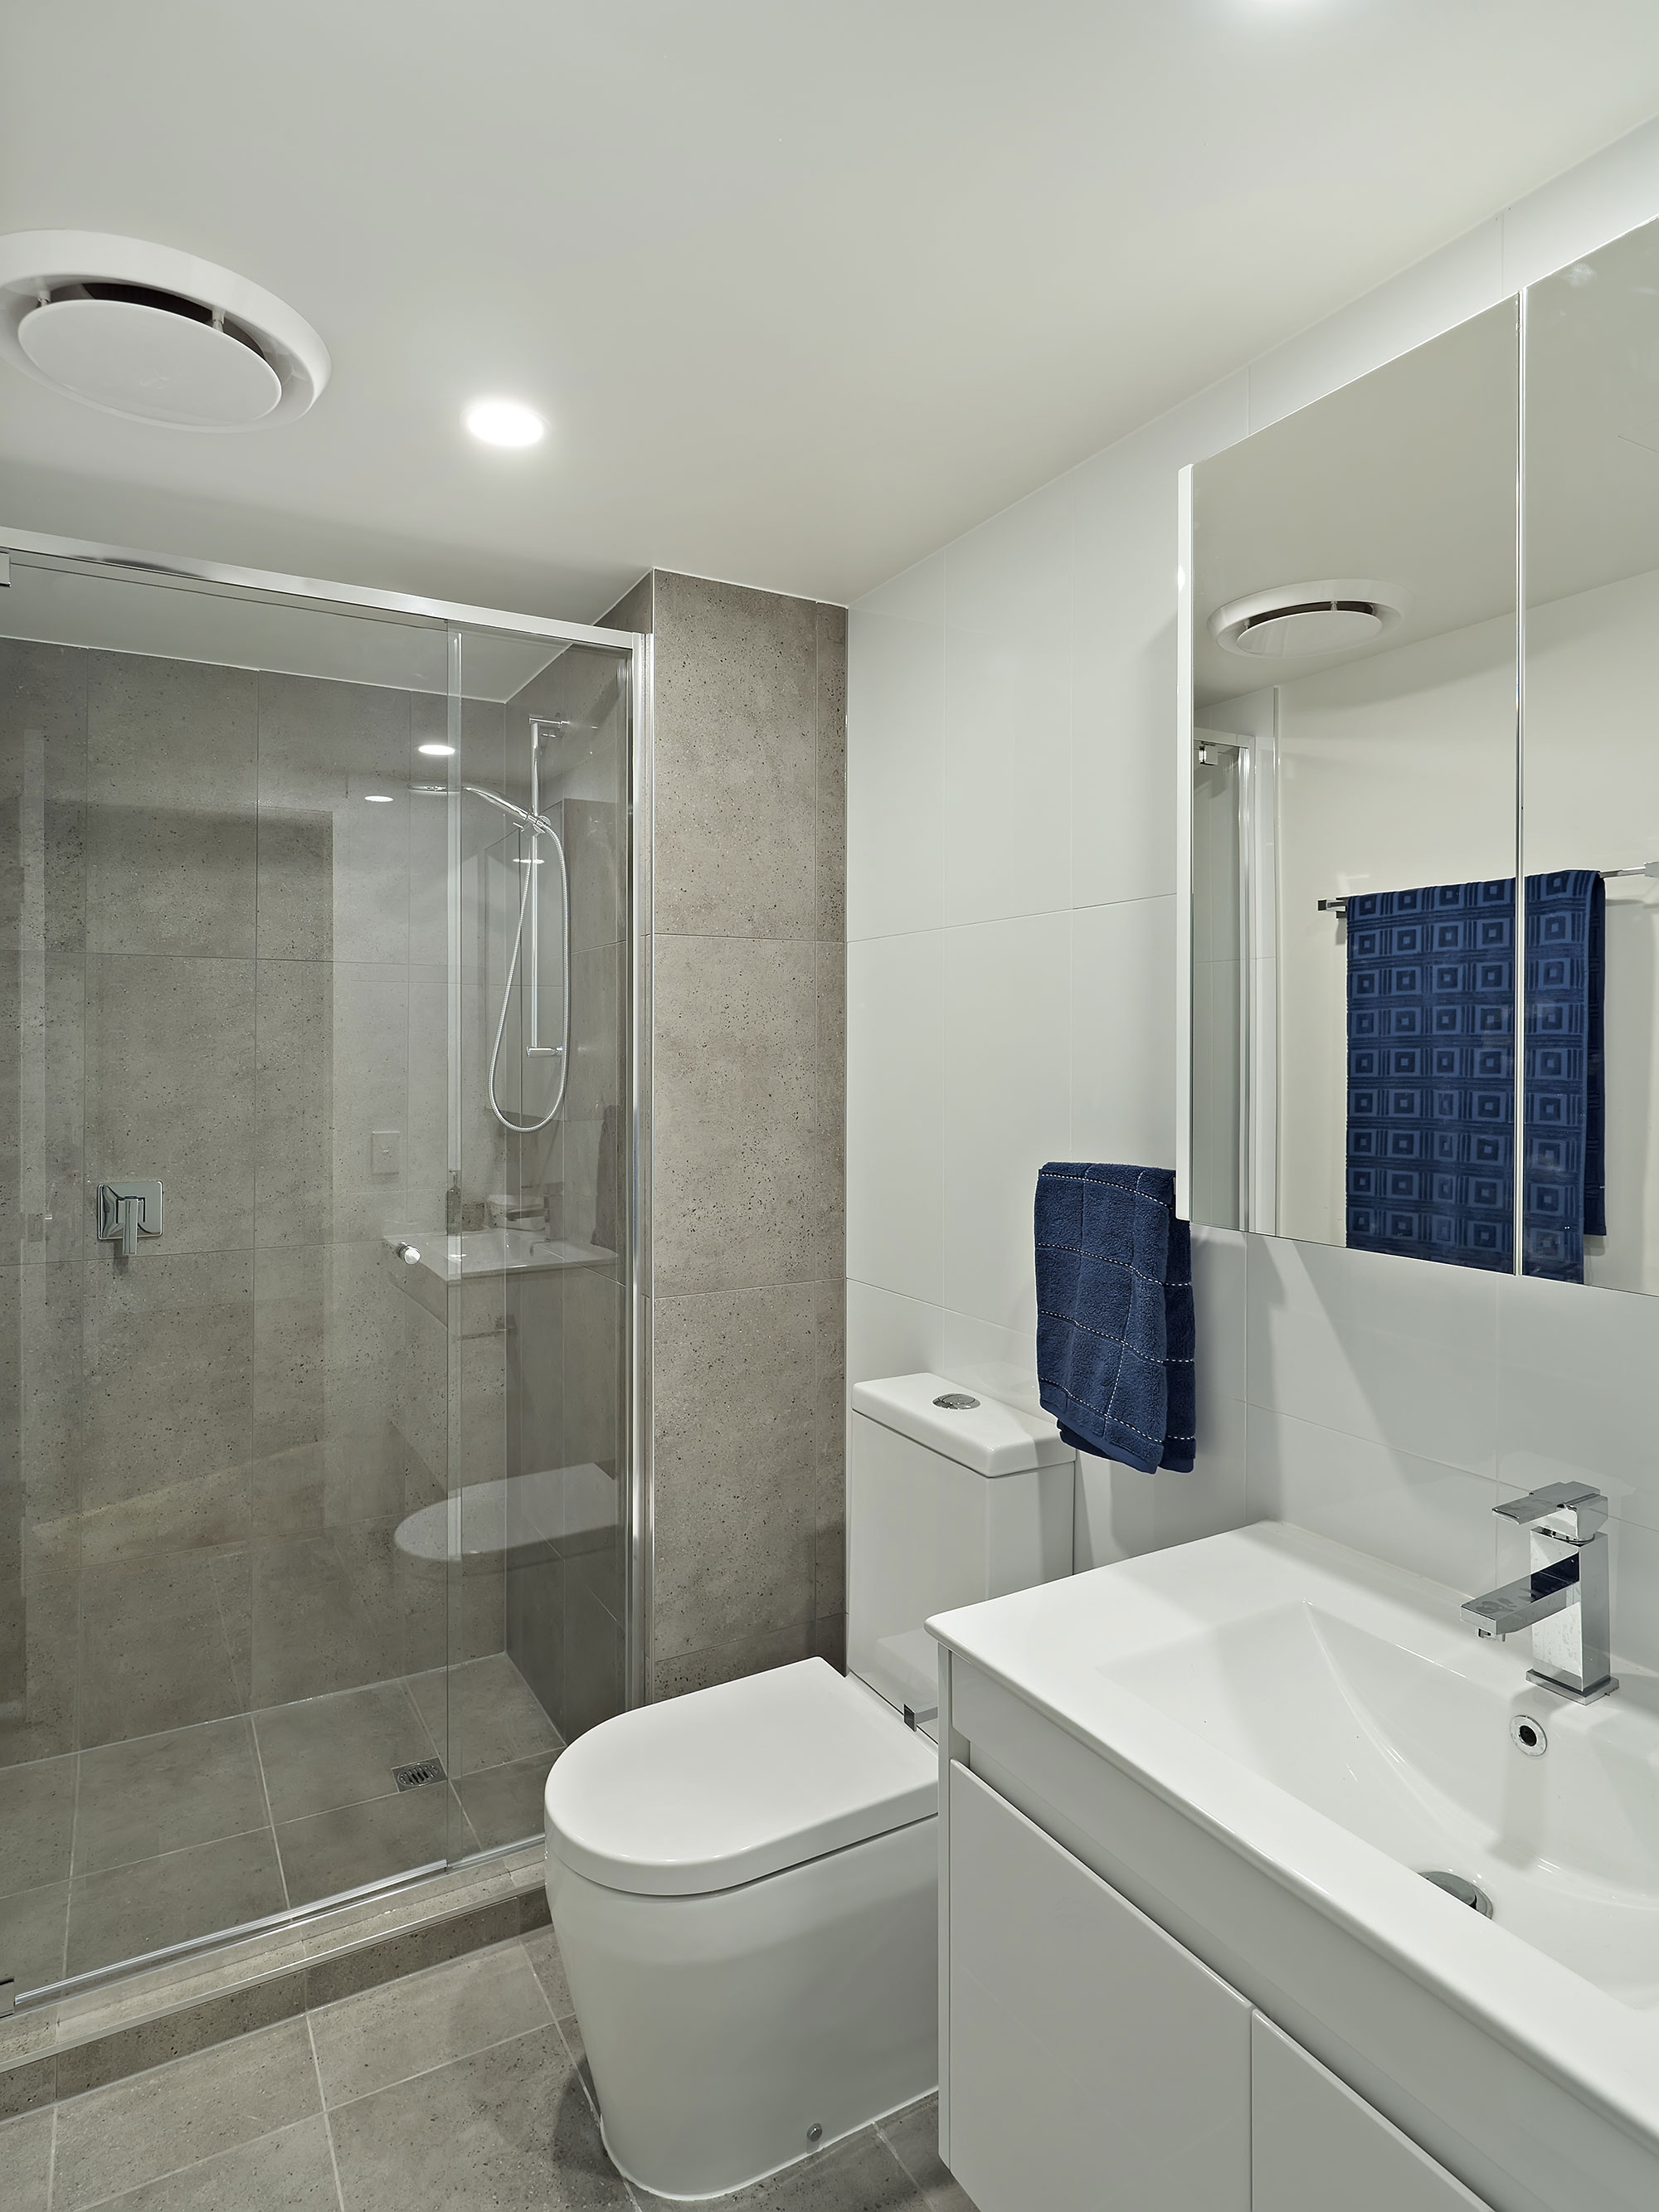 7 Manning St completion photography bathroom